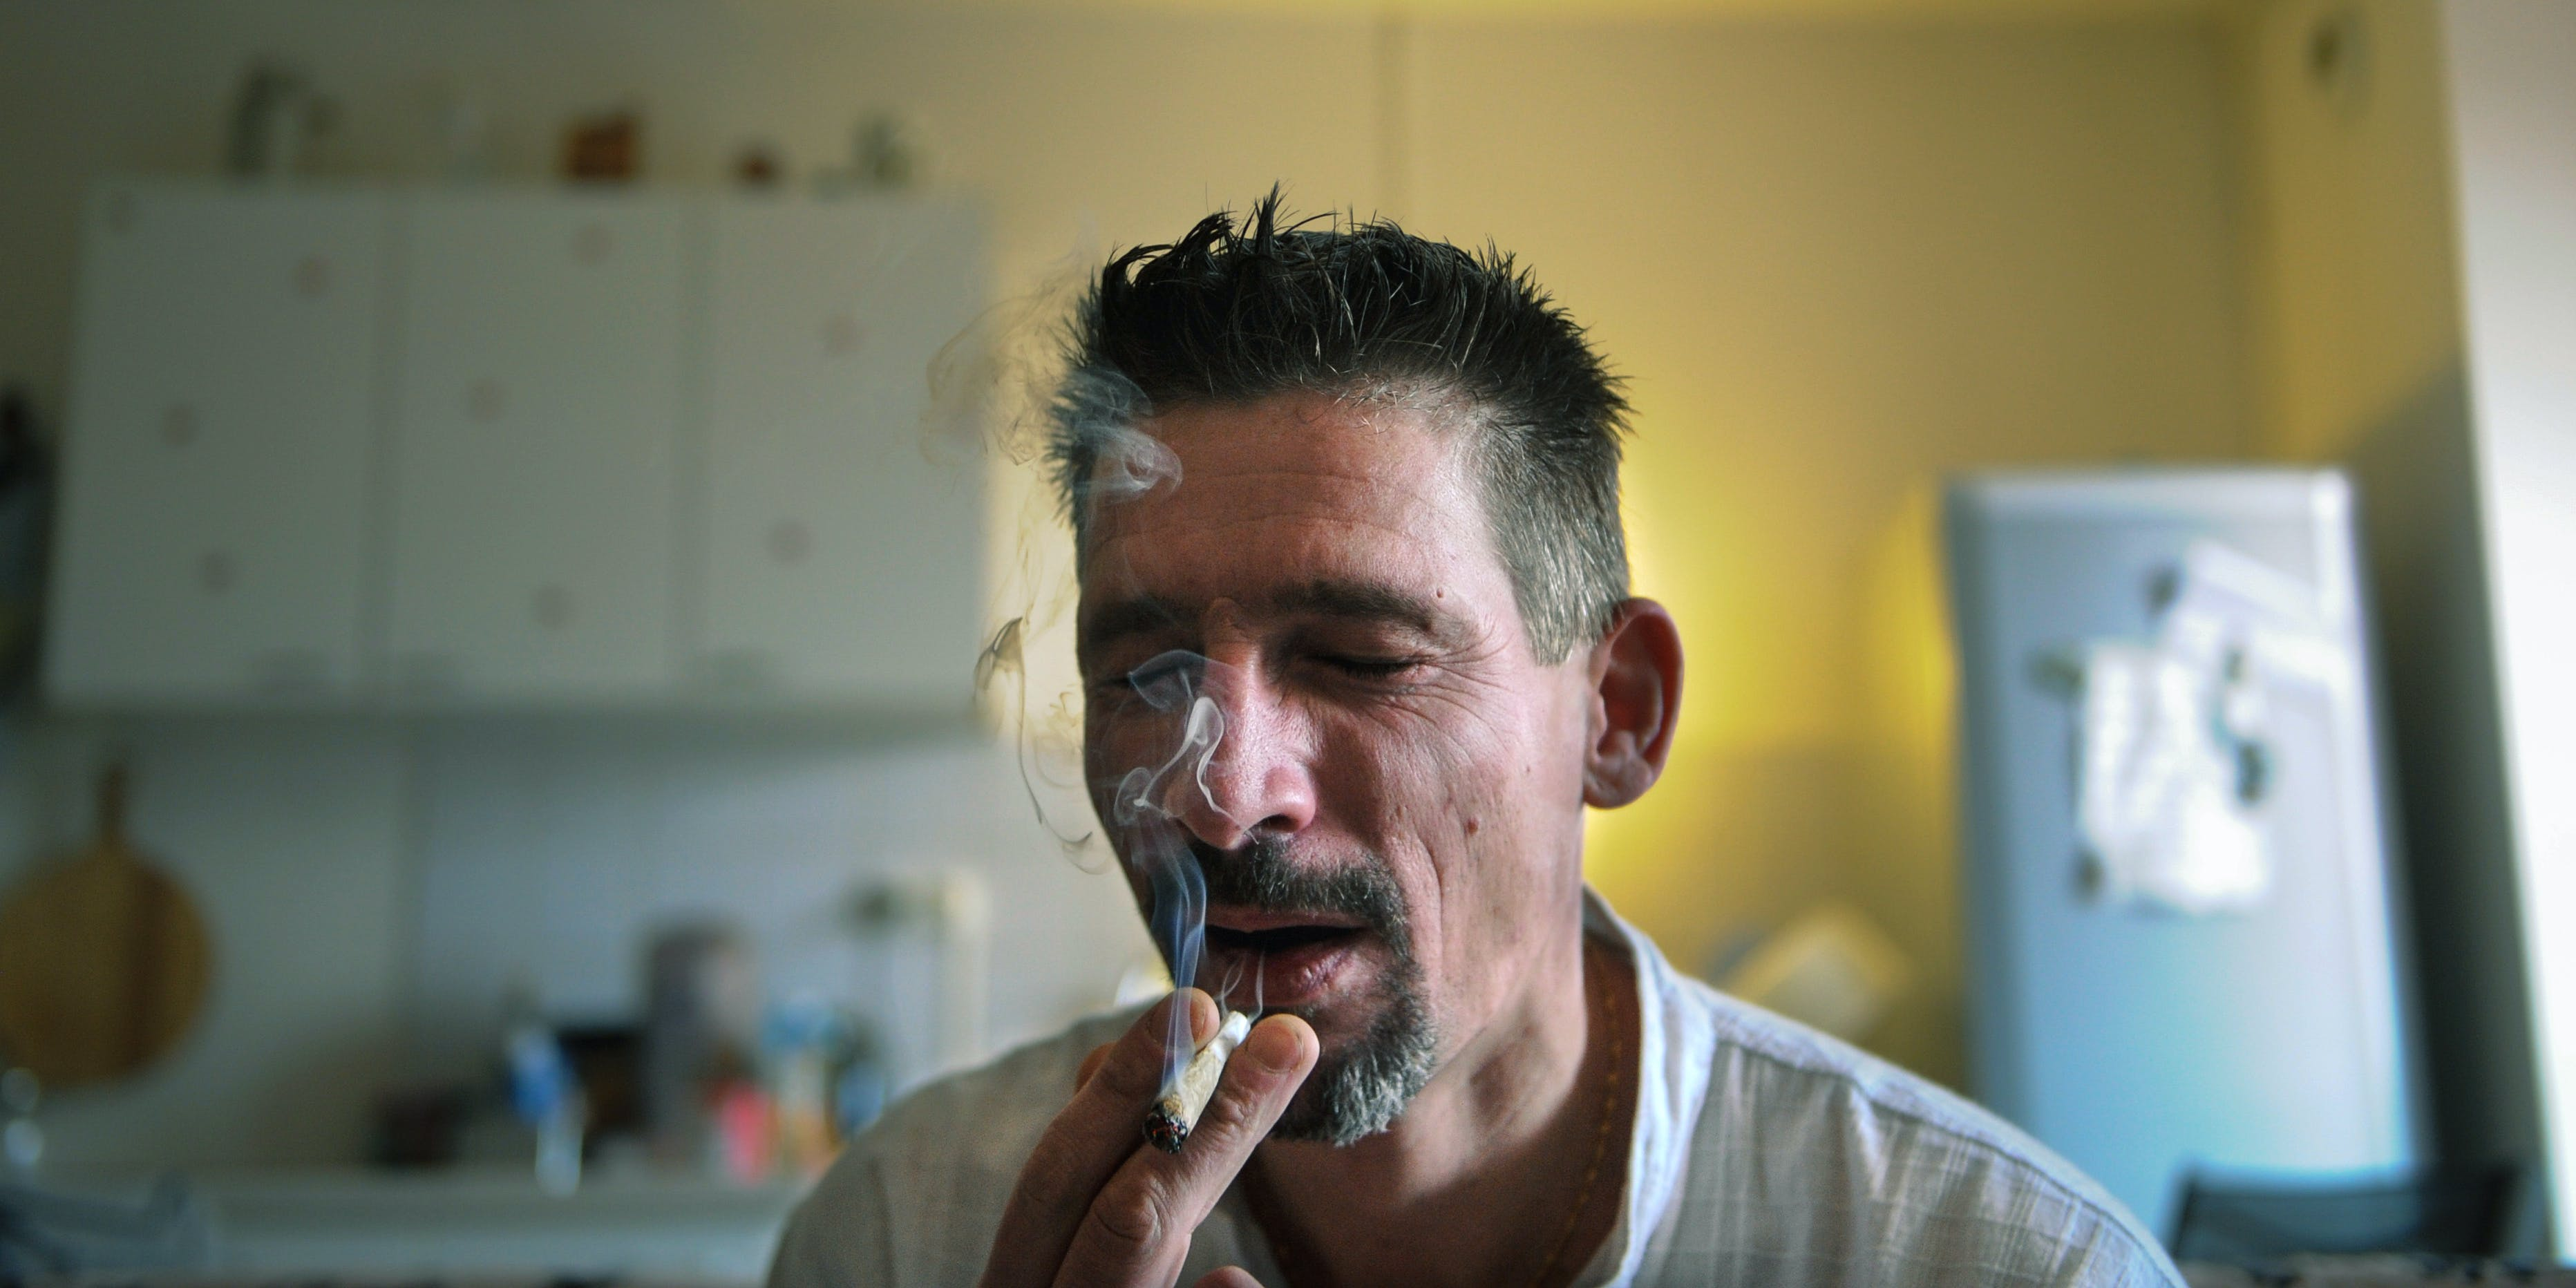 Dominique Loumachi, suffering from Dermatomyositis (Myopathy), smokes a cigarette that looks like a cannabis cigarette - in order not to be charged for promoting consumption of narcotic substances - while posing on February 28, 2013 in Belfort, Eastern France. Some medical marijuana patients prefer cannabis in smokeable form, but that hasn't prevented some states, like Oklahoma, from banning it.